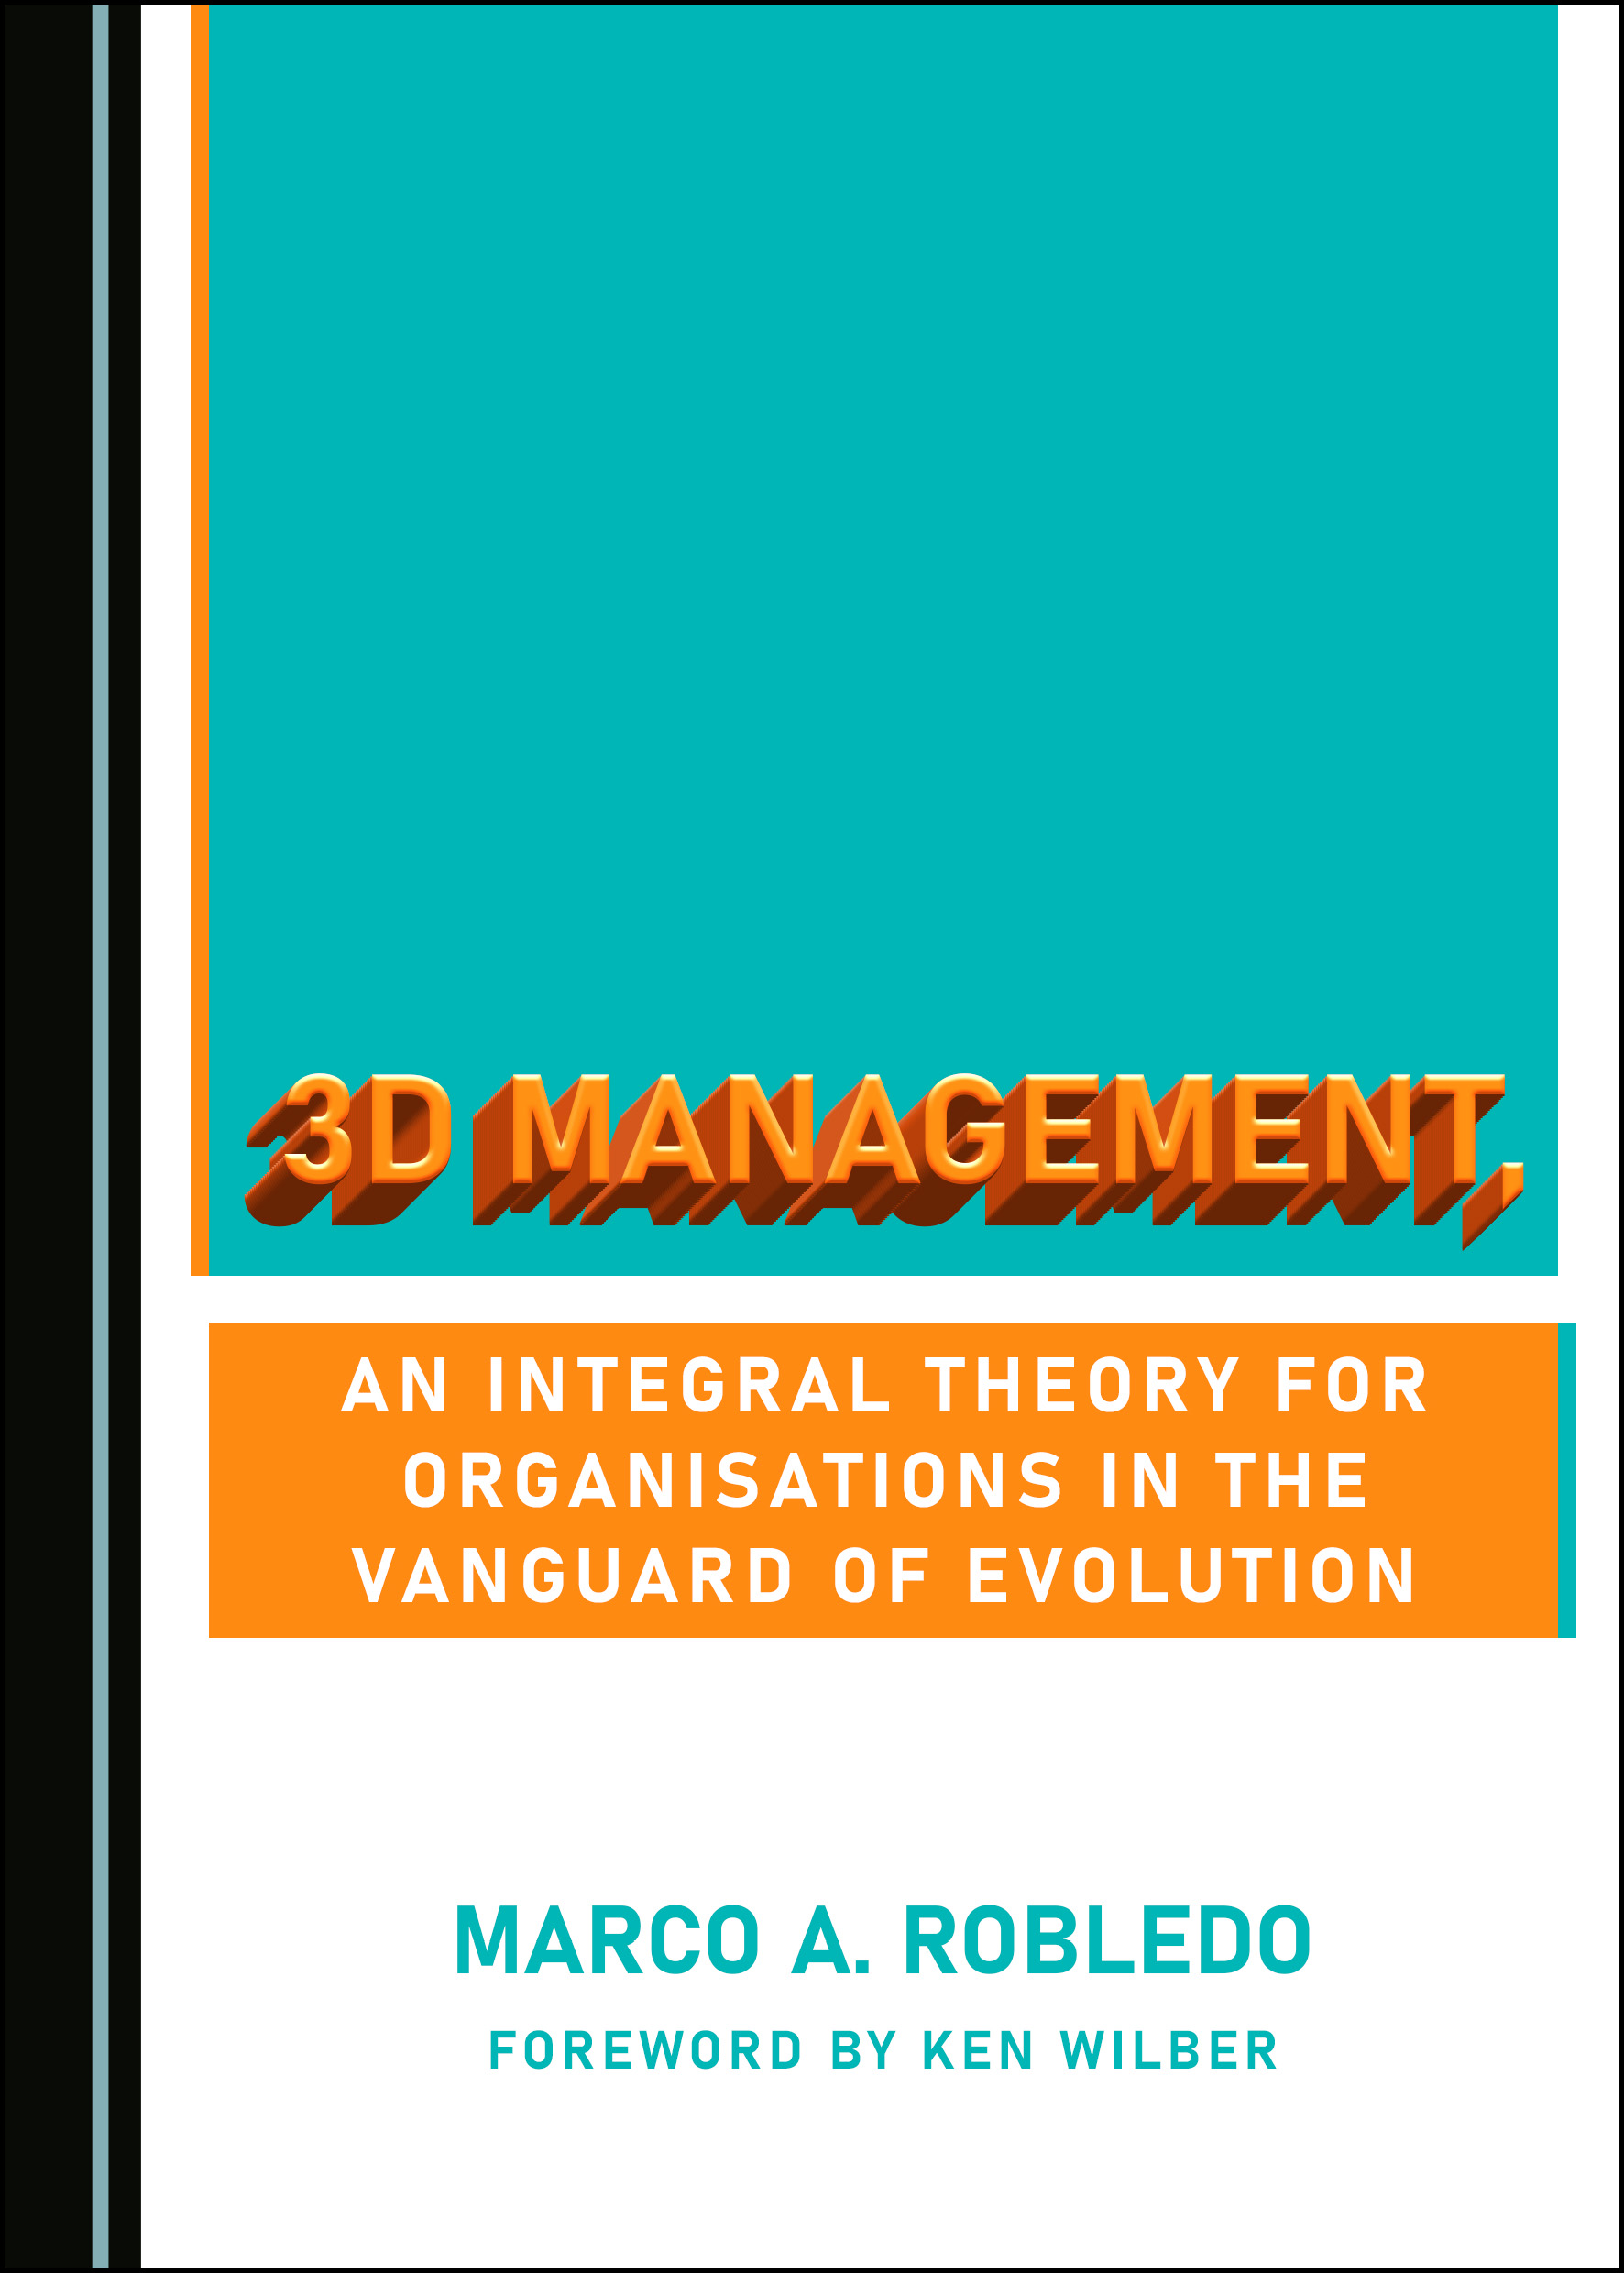 3D Management, an Integral Theory for Organisations in the Vanguard of Evolution